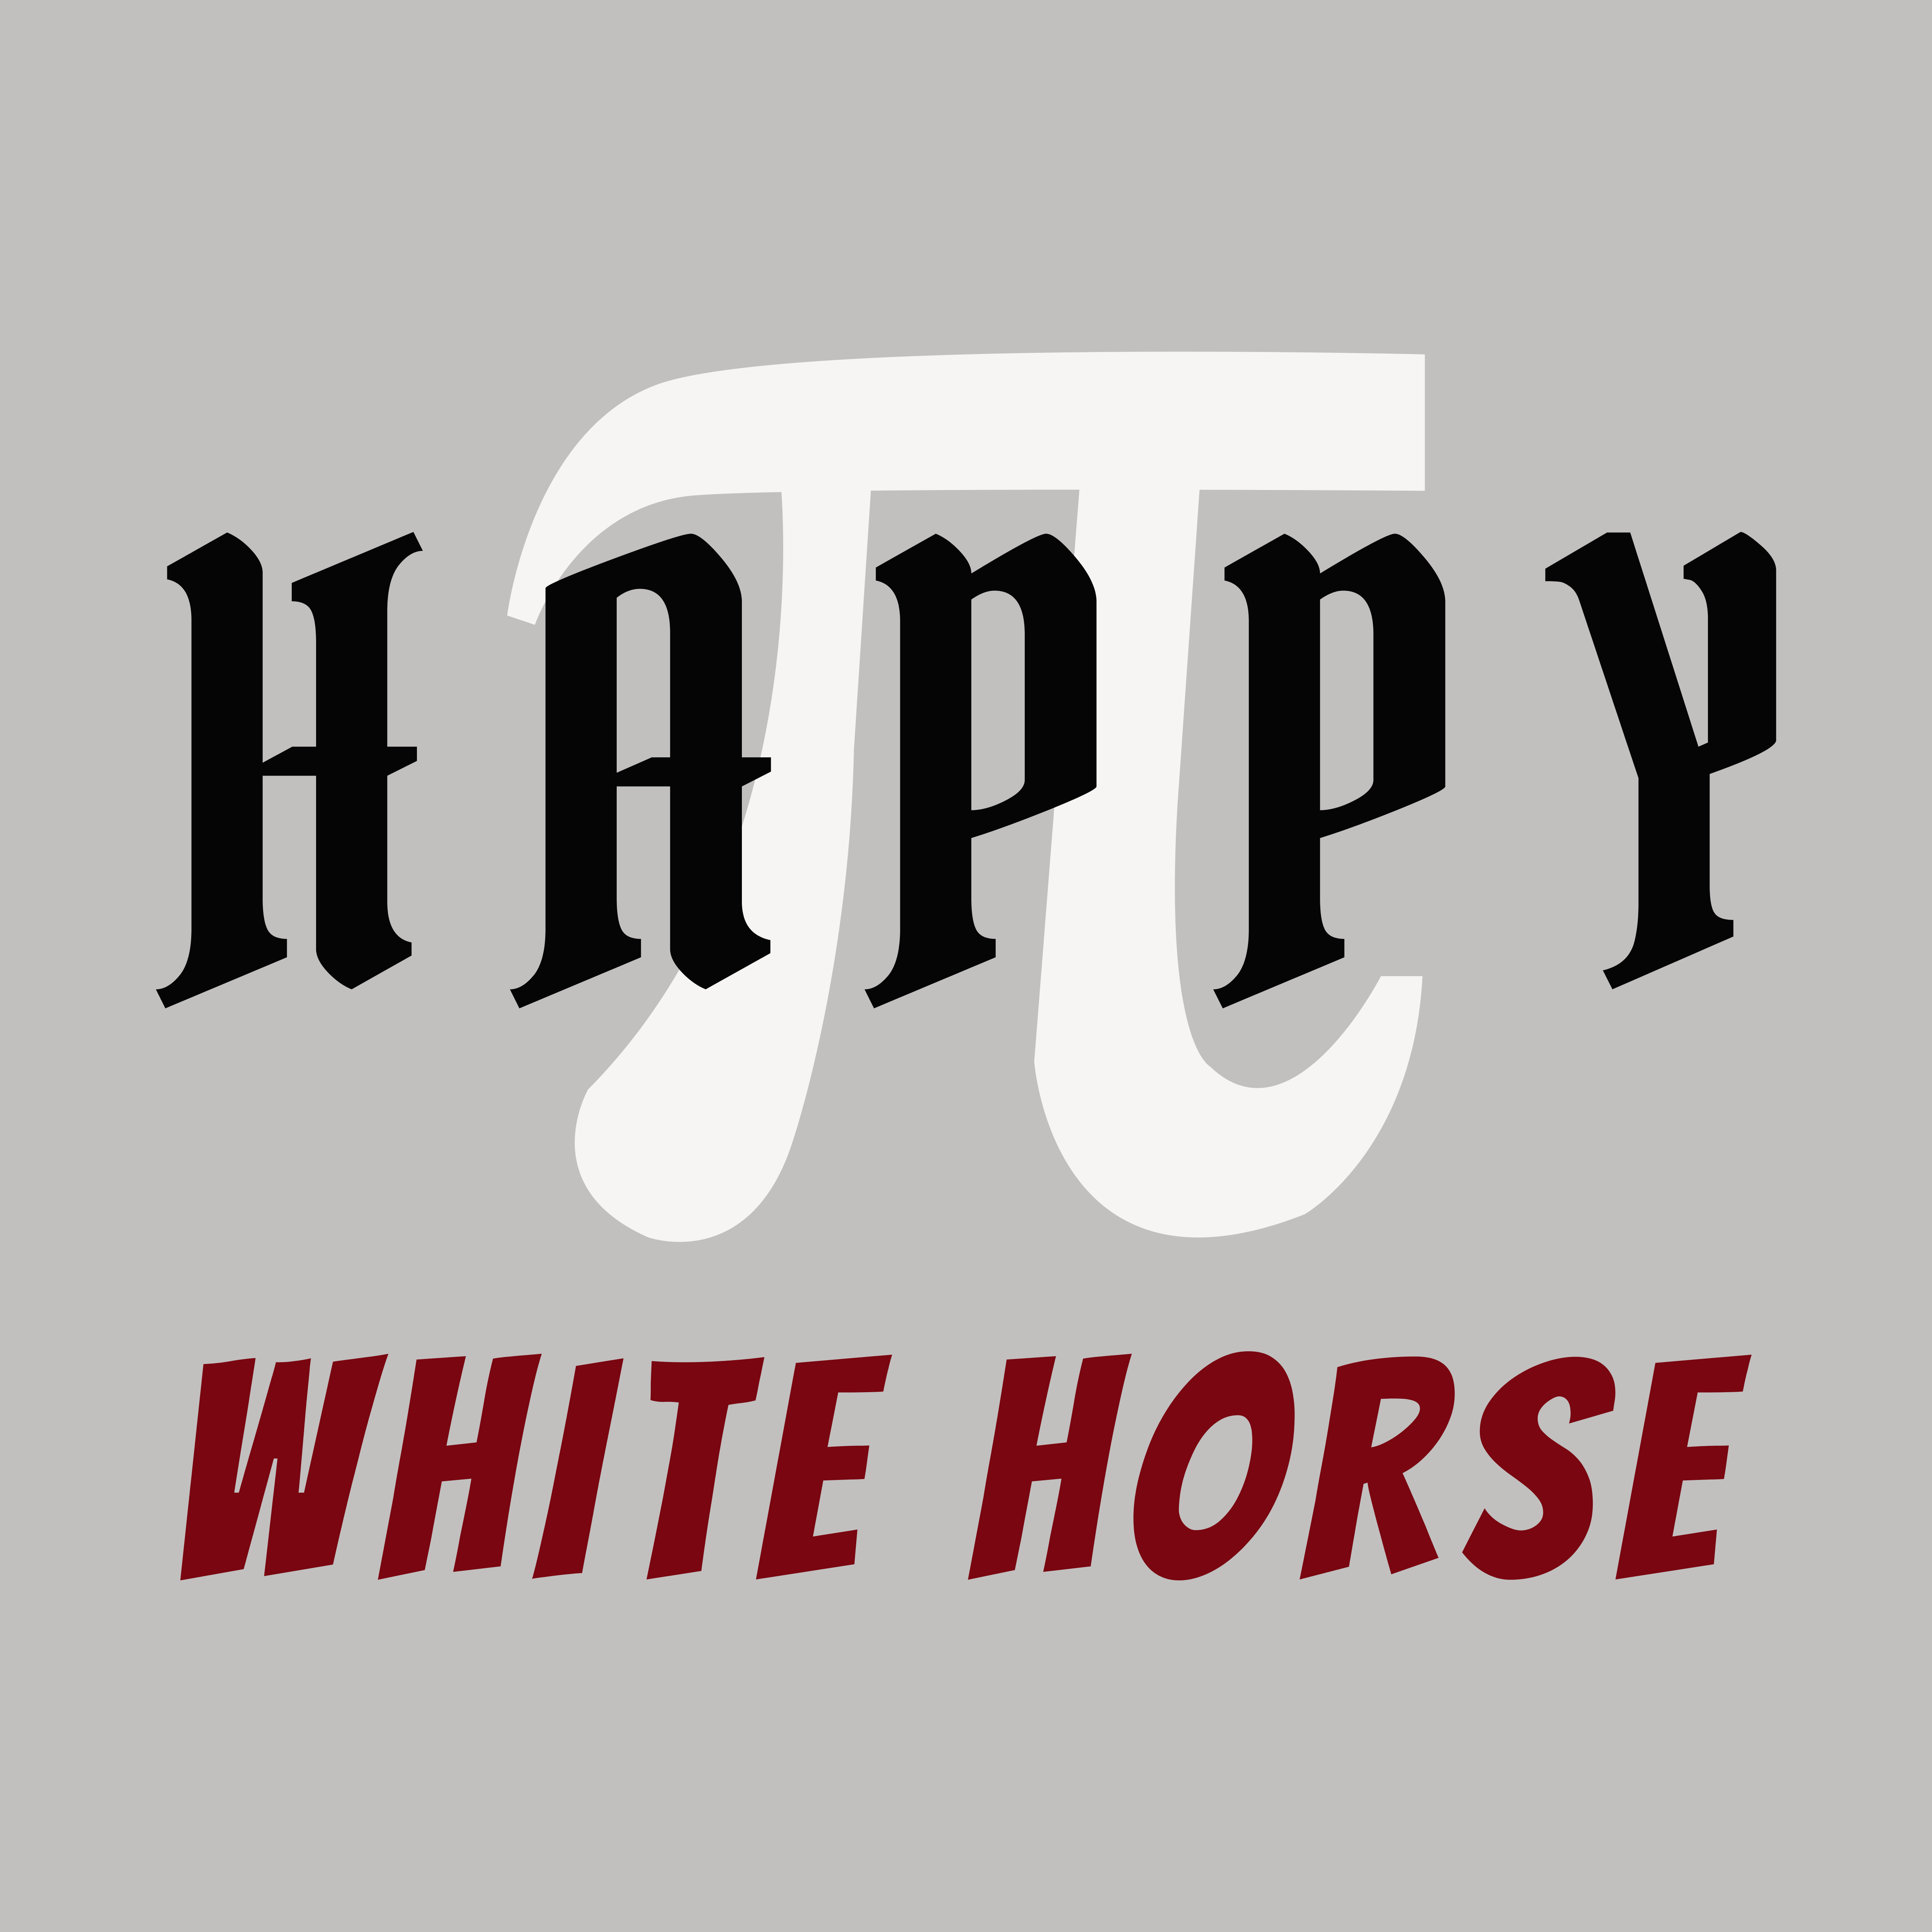 #6 HAPPY WHITE HORSE